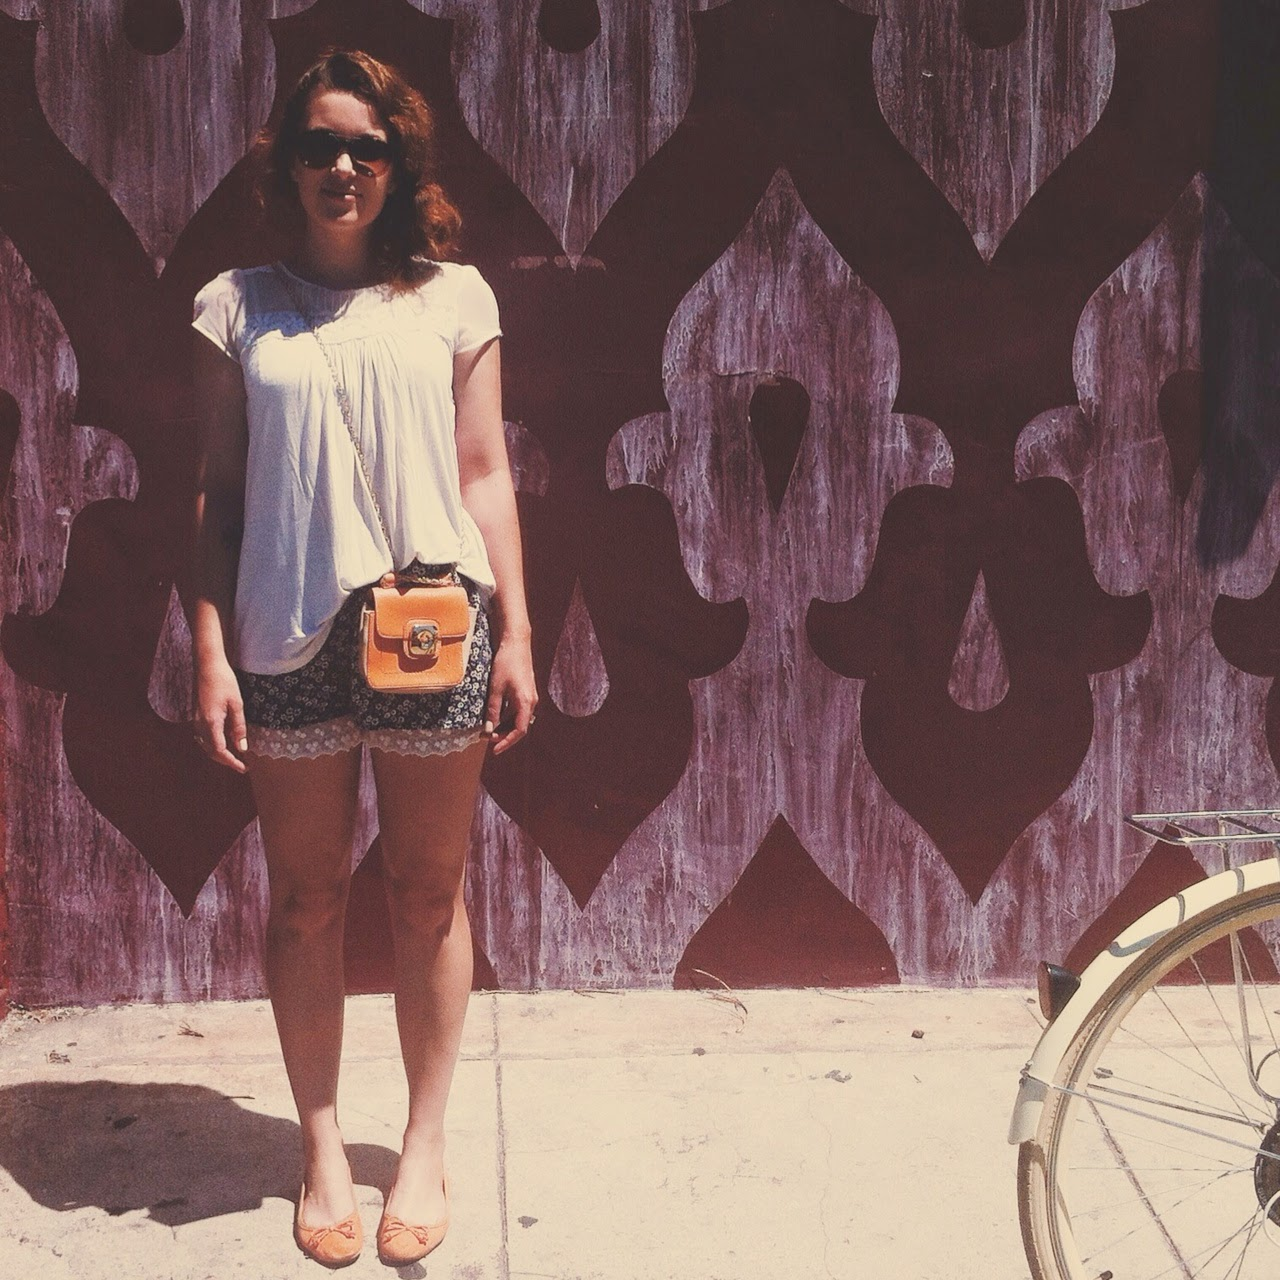 Los Angeles based style blogger wears summer look of floral shirt and breezy top with lace details for a bike ride